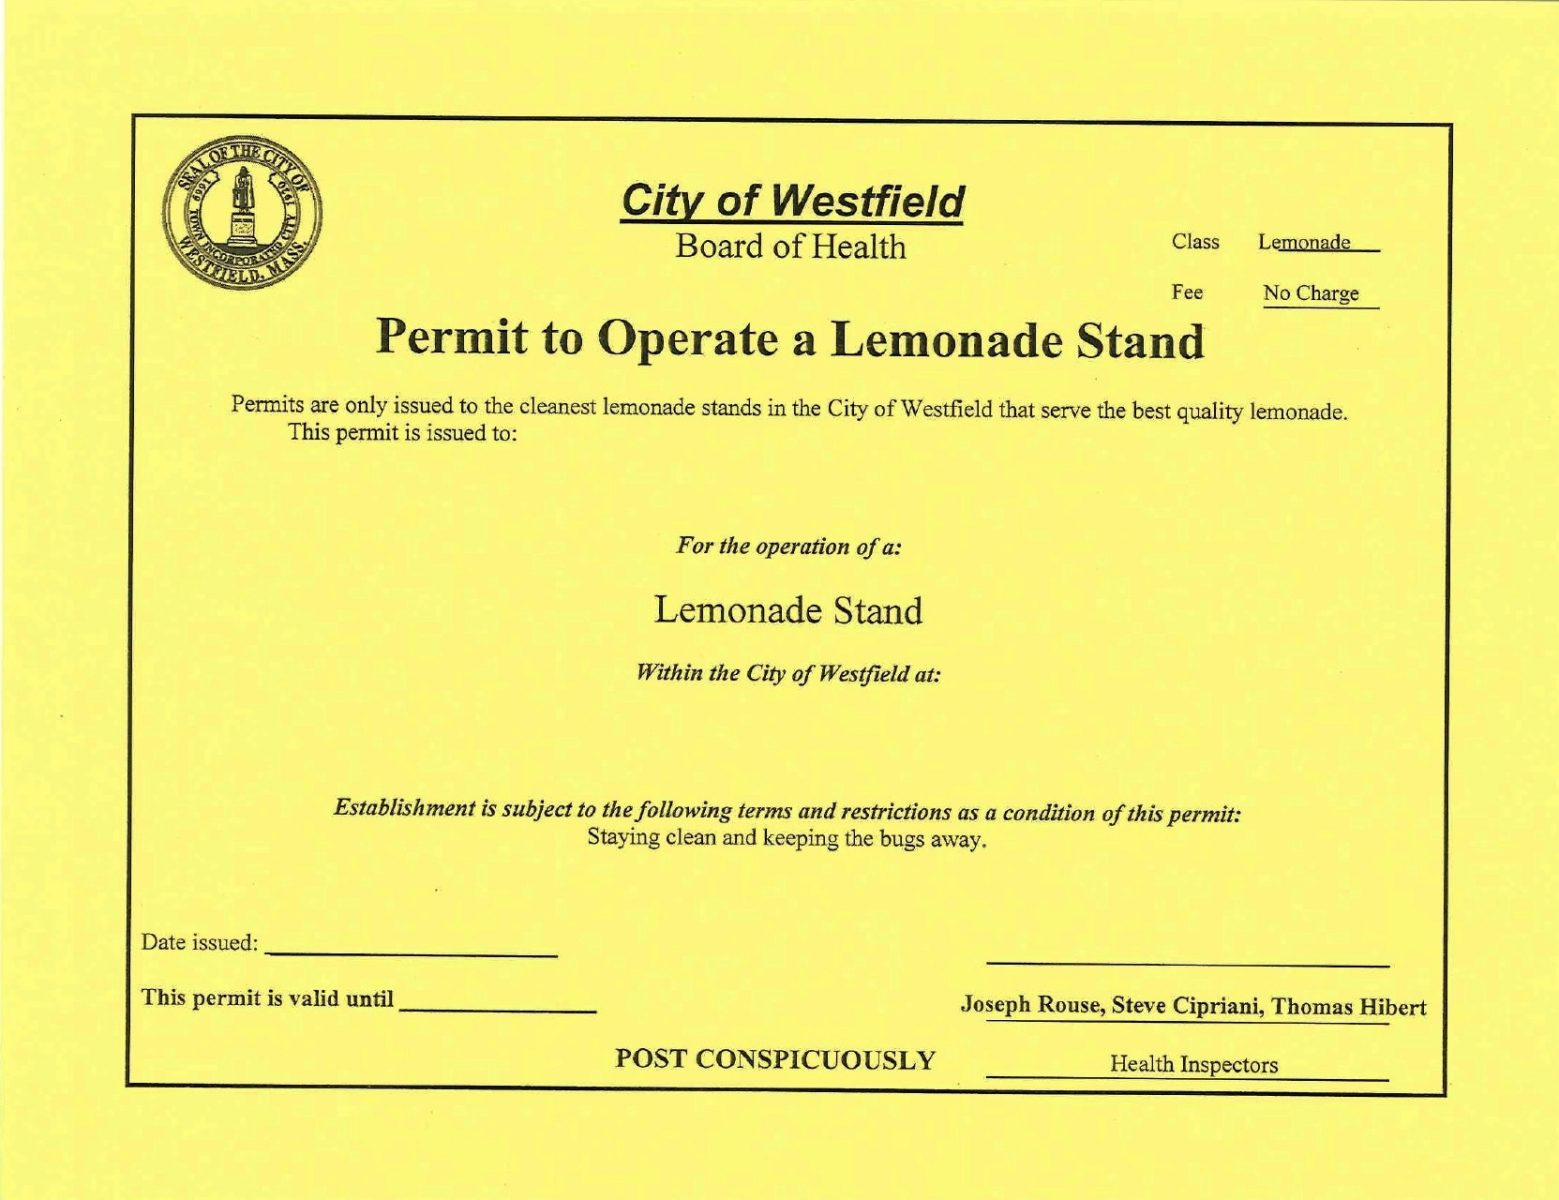 Board of Health issues lemonade stand permit